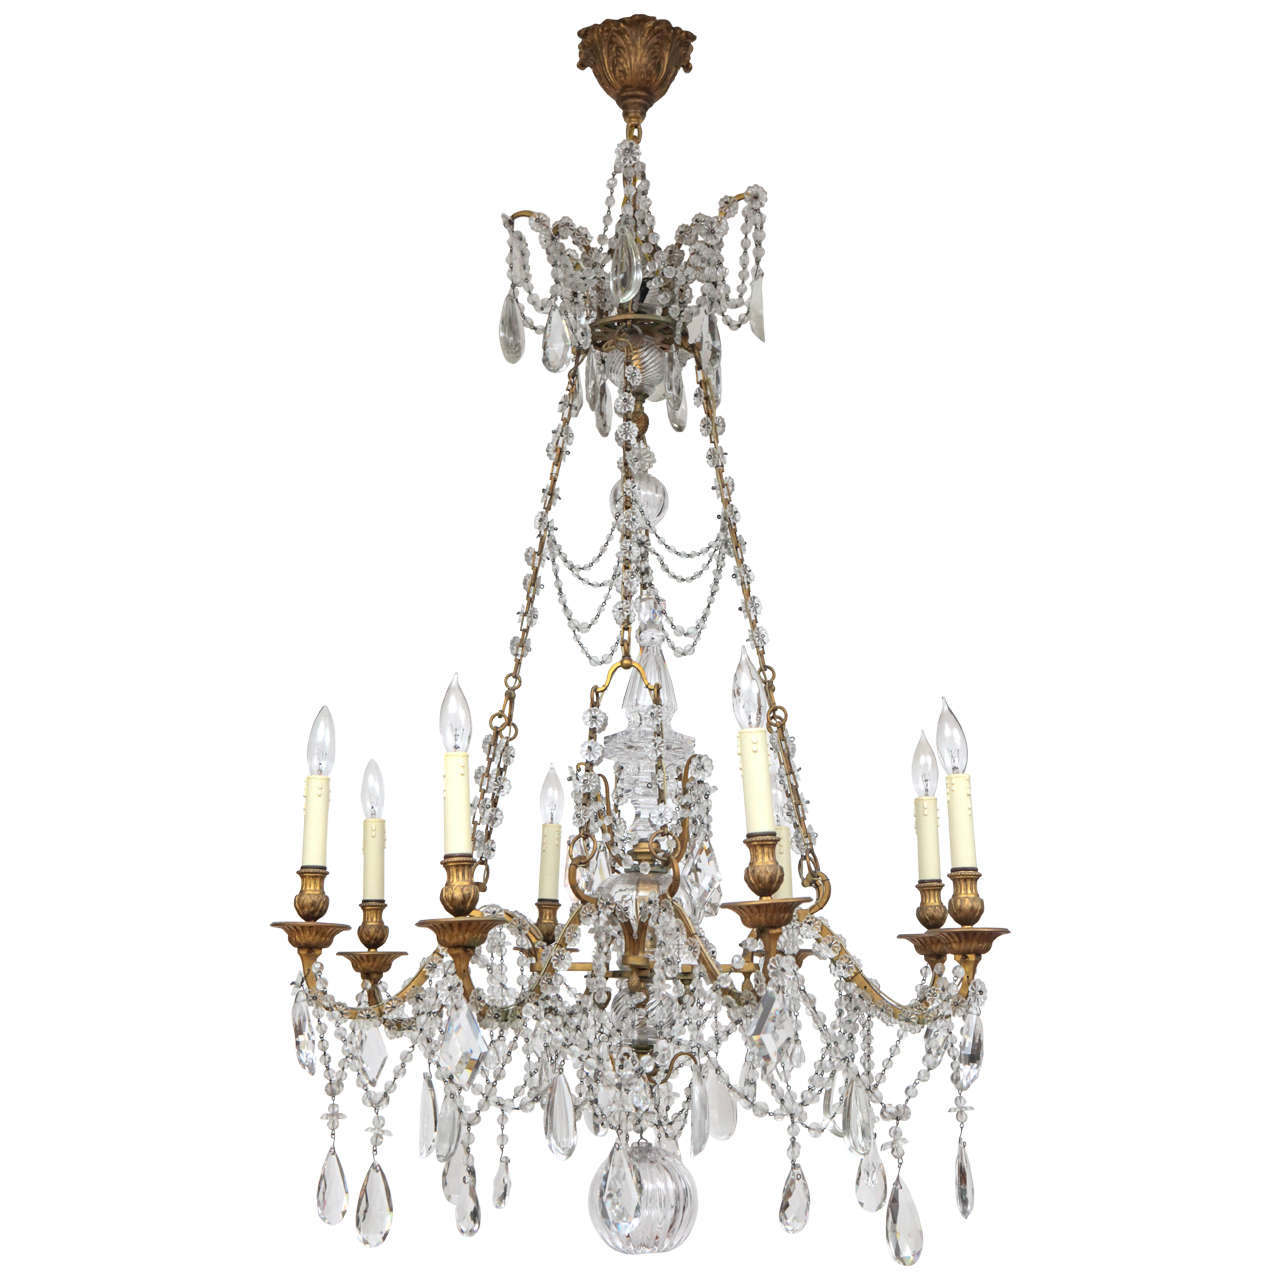 19th century french dor bronze and crystal chandelier for sale at 19th century french dor bronze and crystal chandelier 1 arubaitofo Image collections